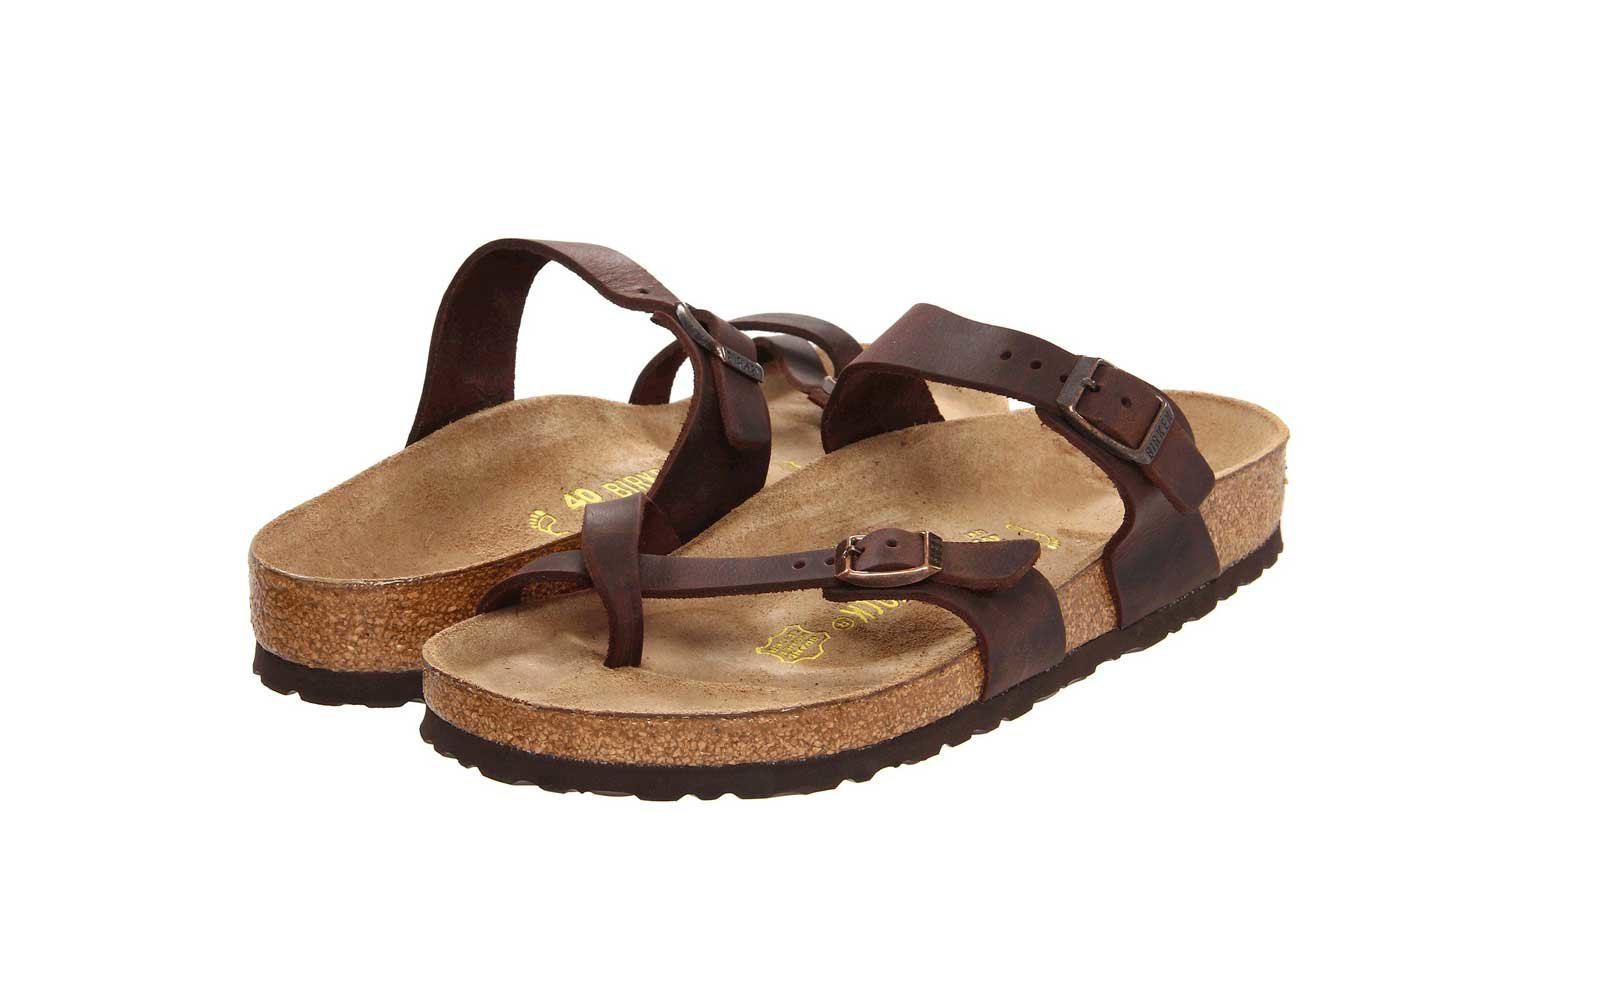 be8ff5bbb66a The Most Comfortable Walking Sandals for Women